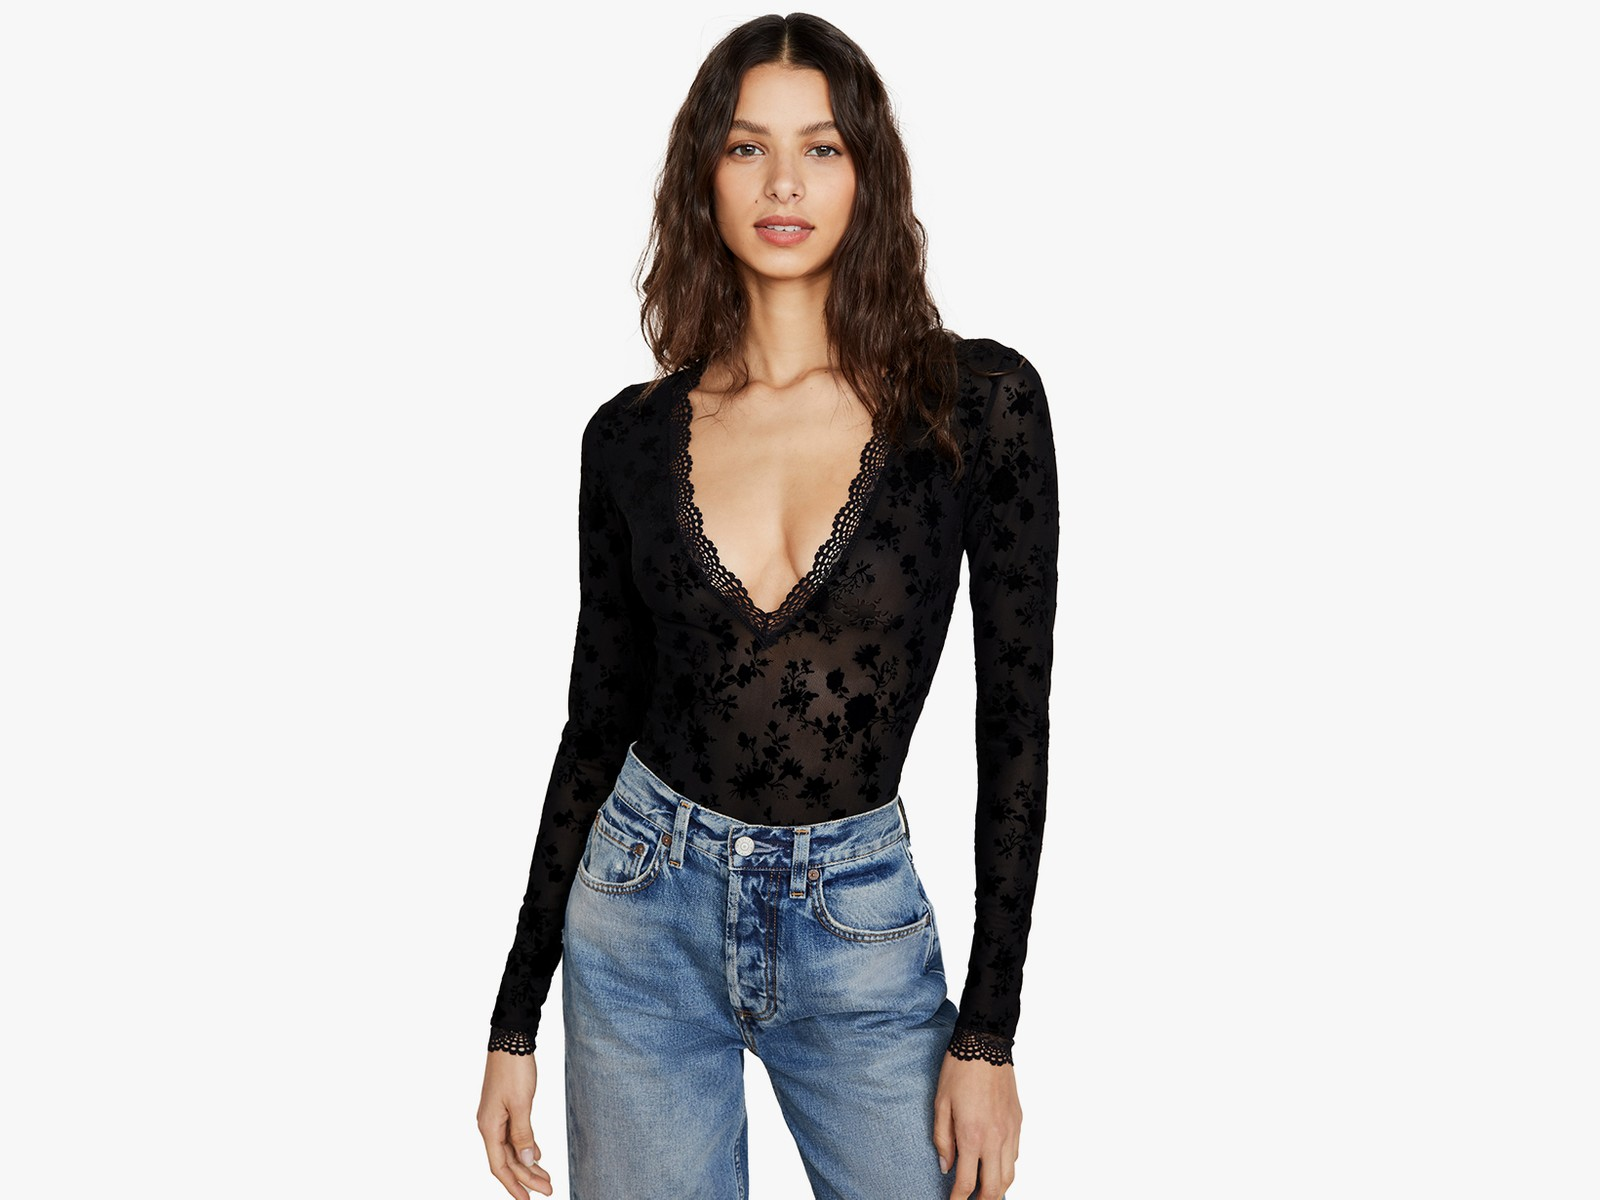 best bodysuits designer affordable winter bottega veneta free people off white